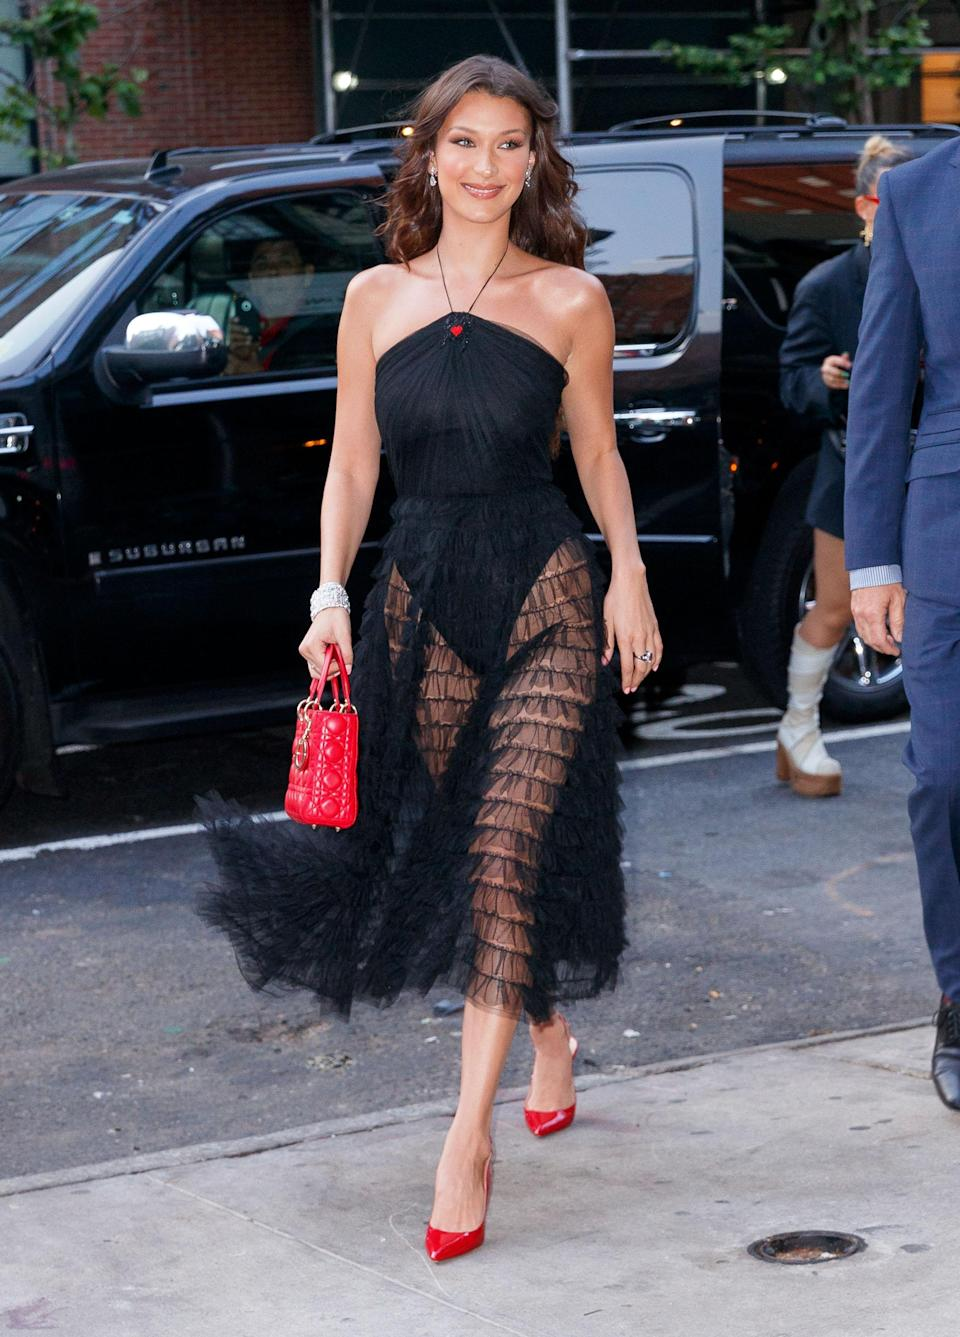 <p>Supermodel Bella Hadid not only debuted long extensions but rocked a new Dior dress featuring a sheet skirt while out in New York, which she wore with red accessories. <br><em>[Photo: Getty]</em> </p>